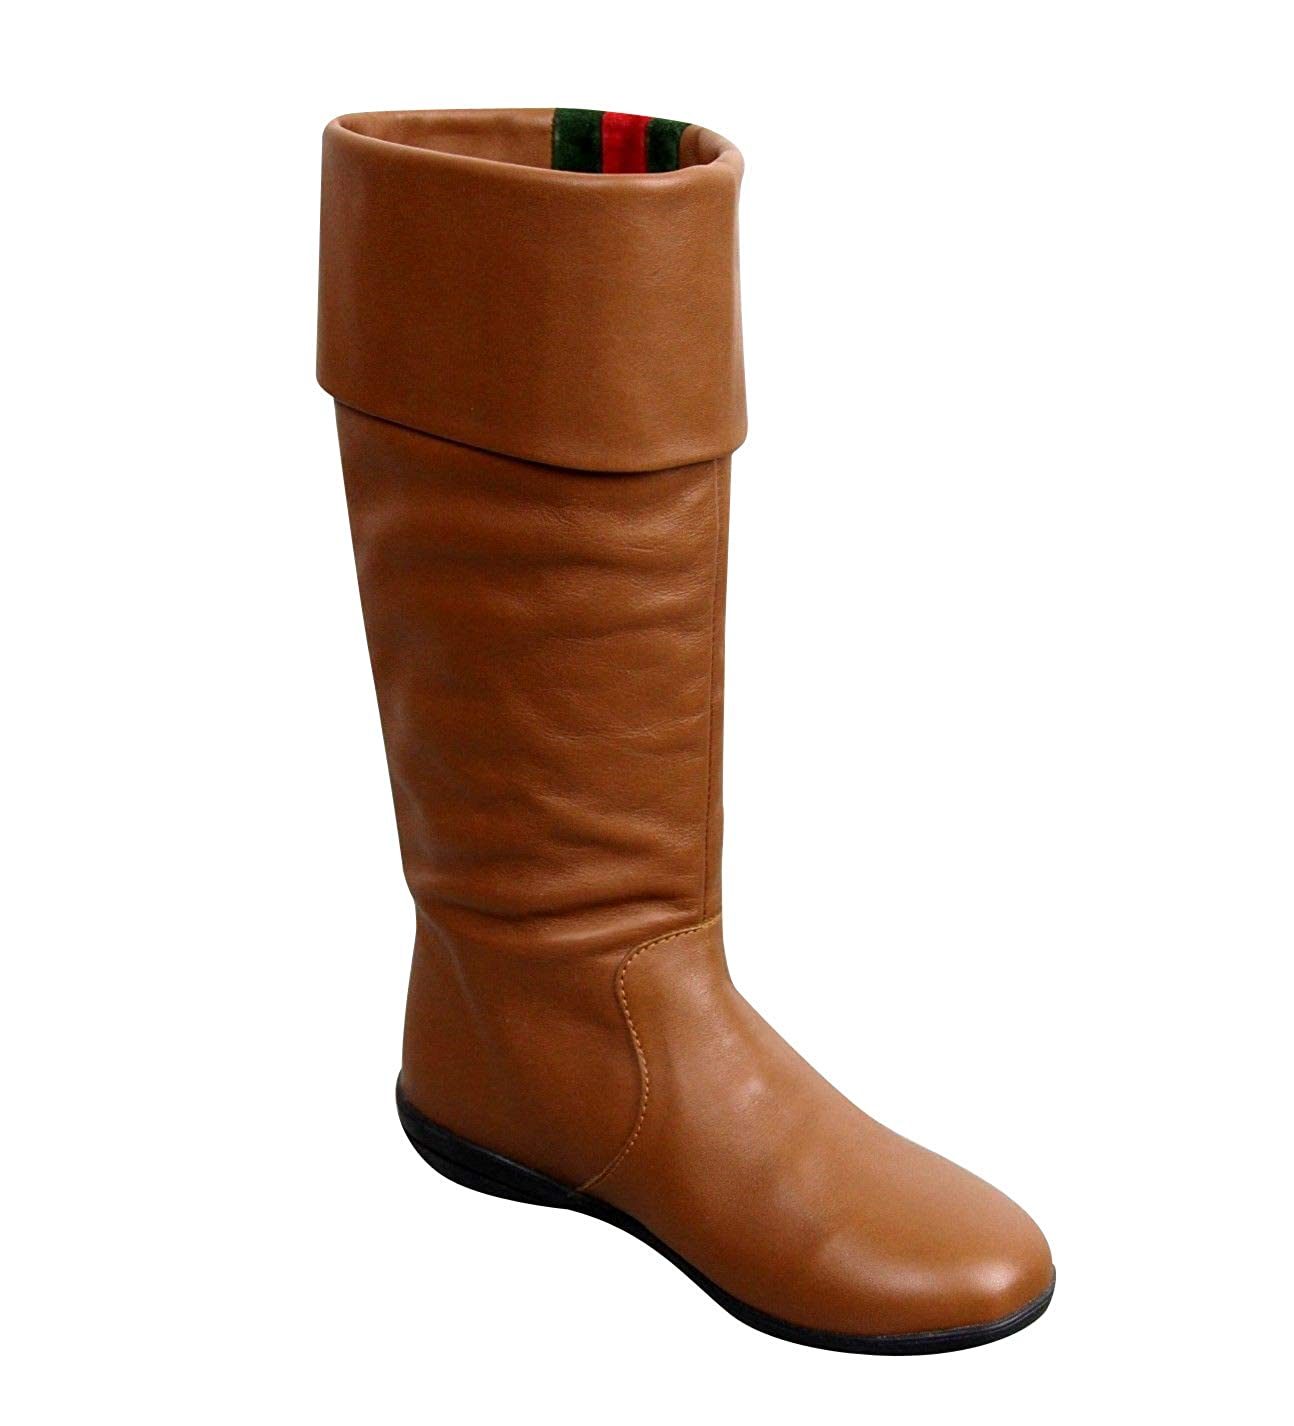 2338d5c2a Amazon.com | Gucci Kids Brown Leather Boots with Web Detail 285230 | Boots